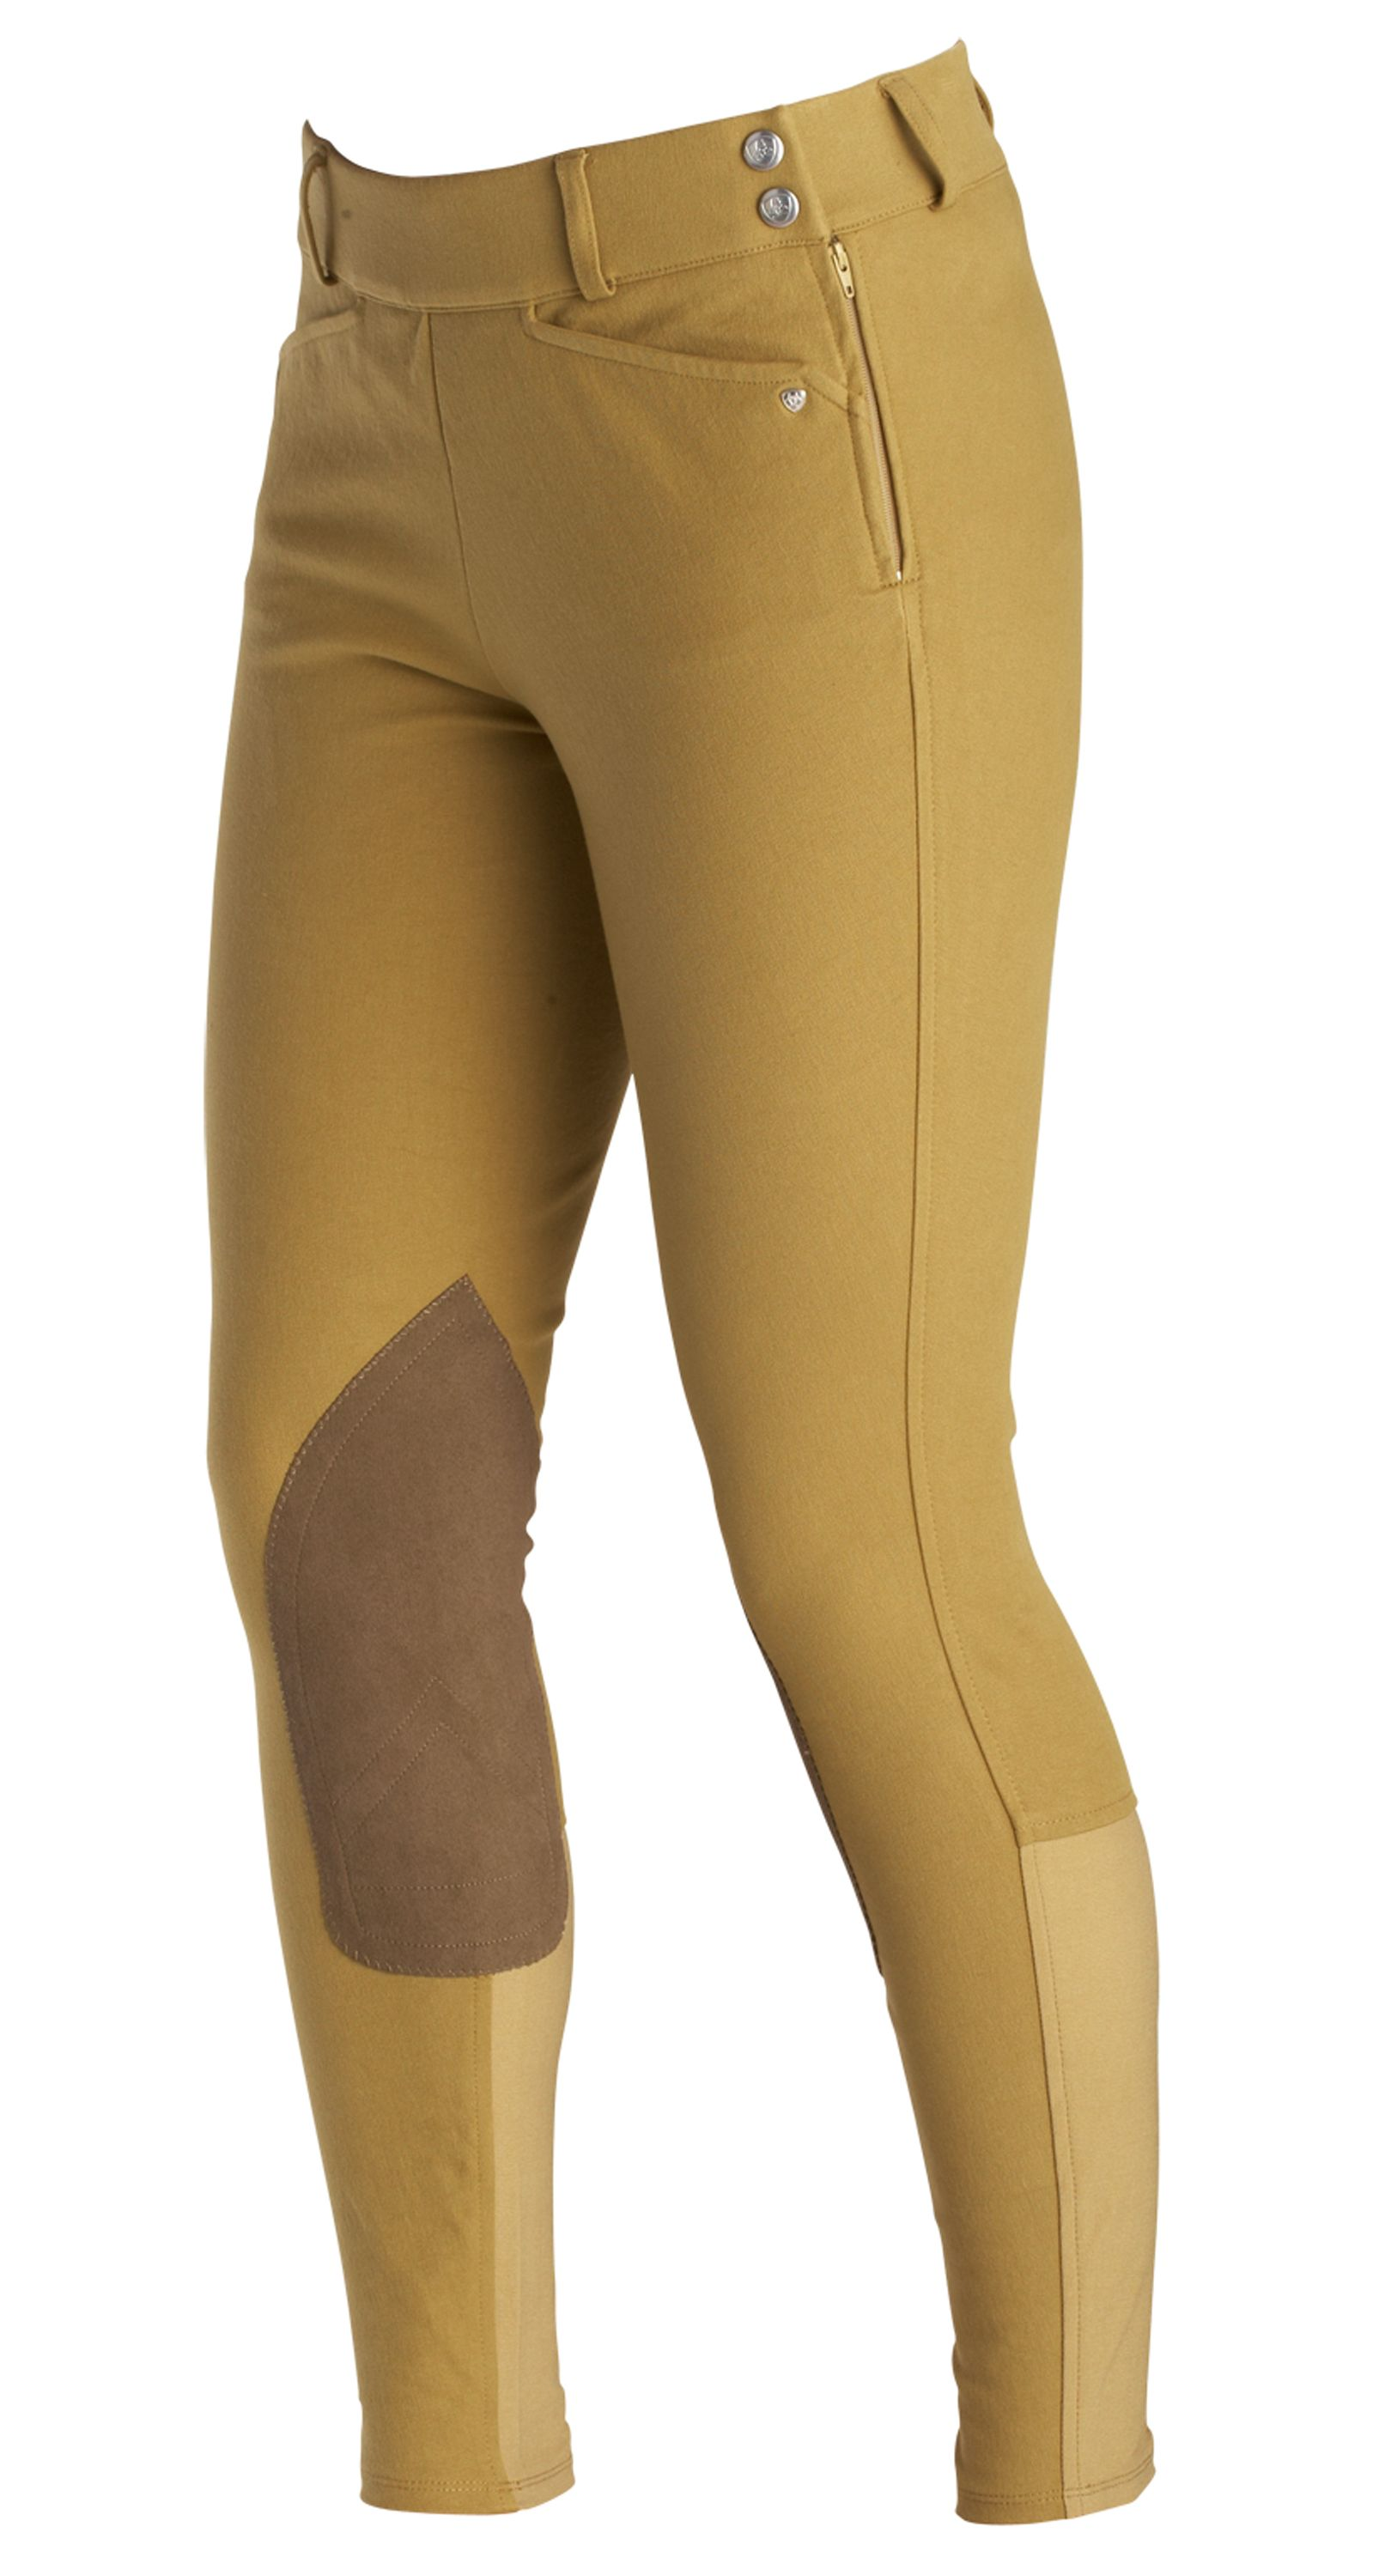 Ariat Ladies Heritage Low Rise Side Zip Riding Breeches